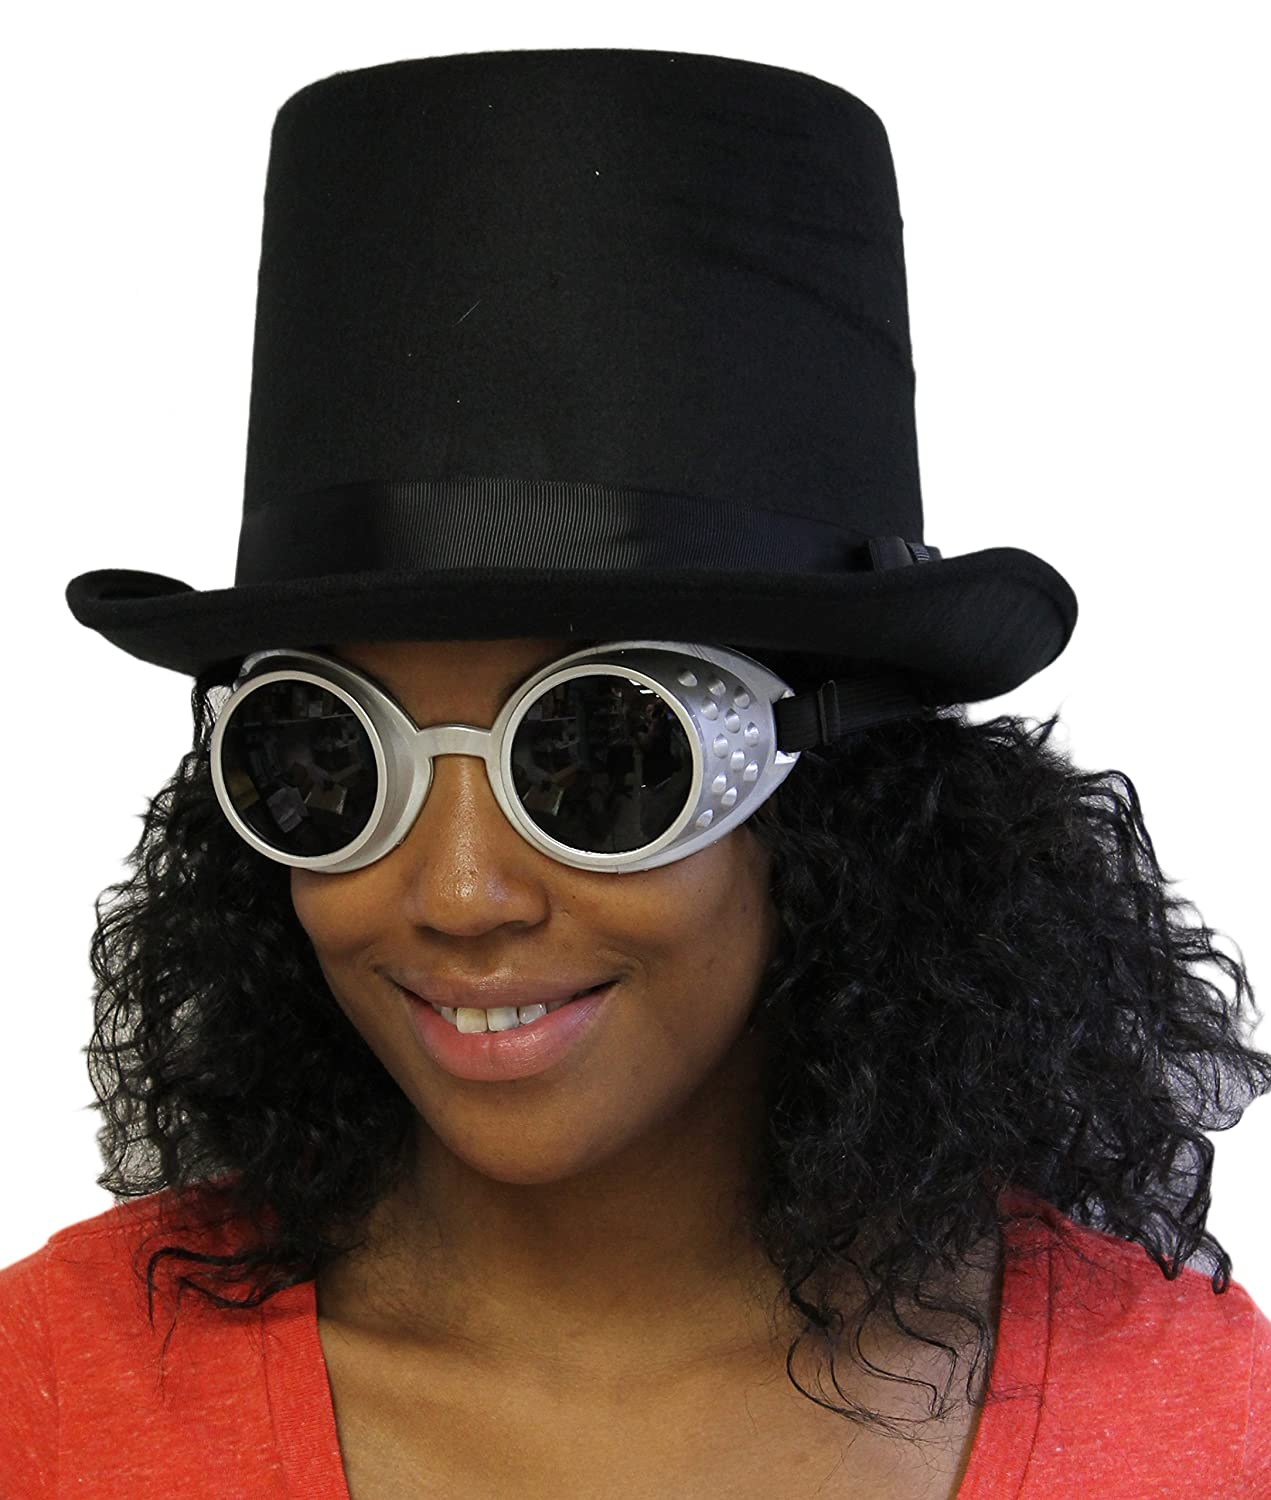 Costume Acessory Set - Unisex Adult Steampunk Top Hat and Goggles Set